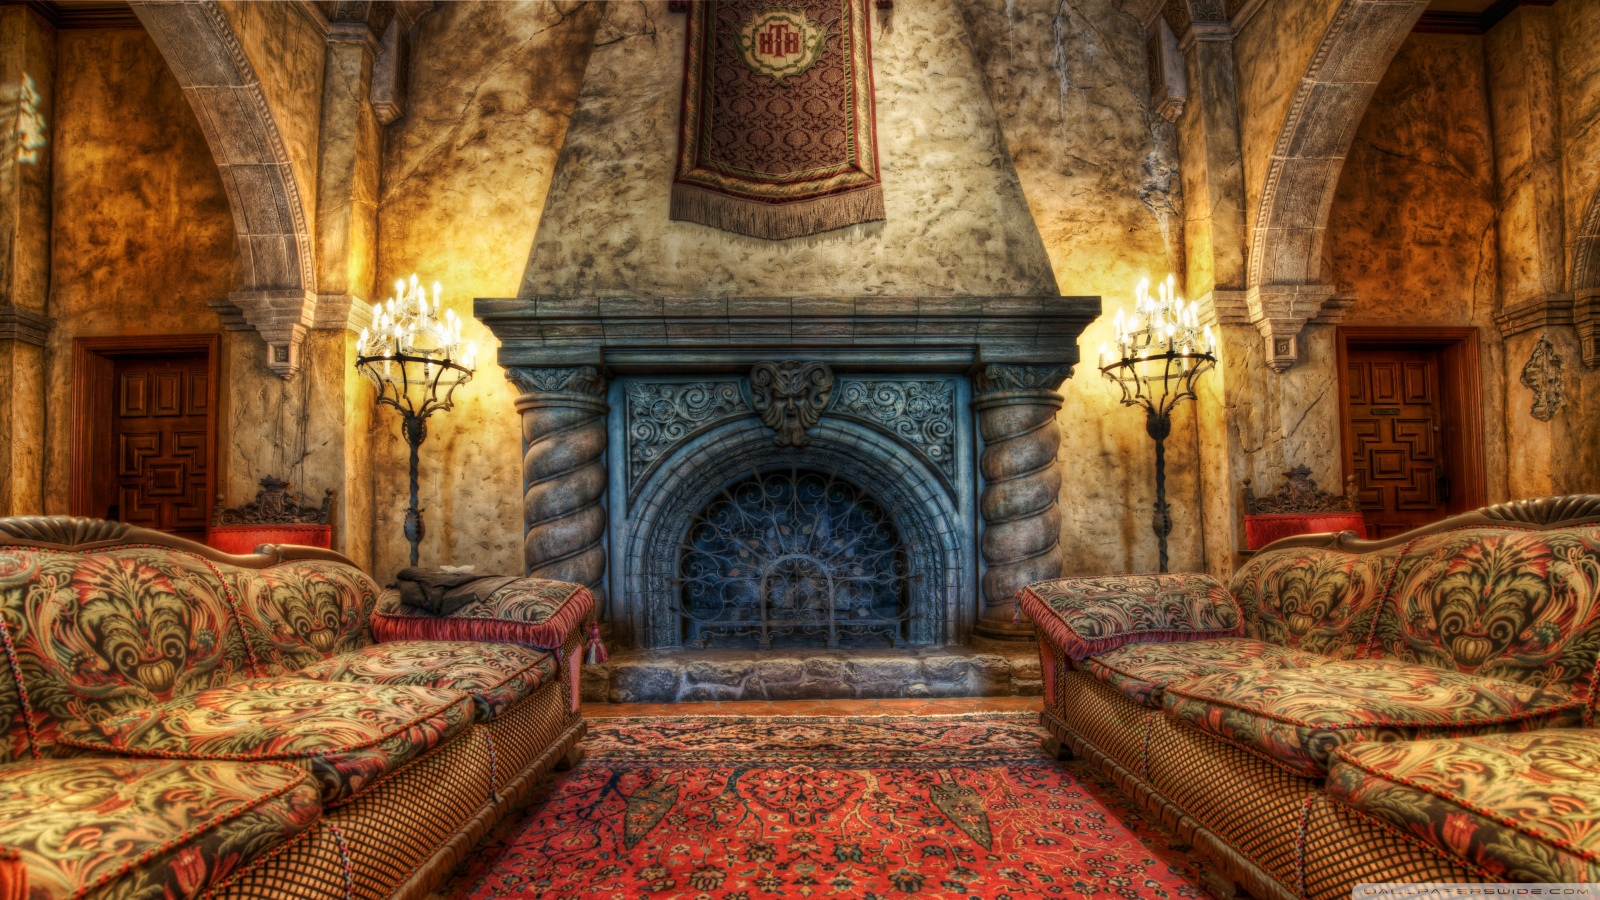 http://4.bp.blogspot.com/-SE0kkj9koTs/USyRYUjlnzI/AAAAAAAABTg/u8VezUqTsbE/s1600/the_fireplace_in_the_tower_of_terror-wallpaper-1600x900.jpg